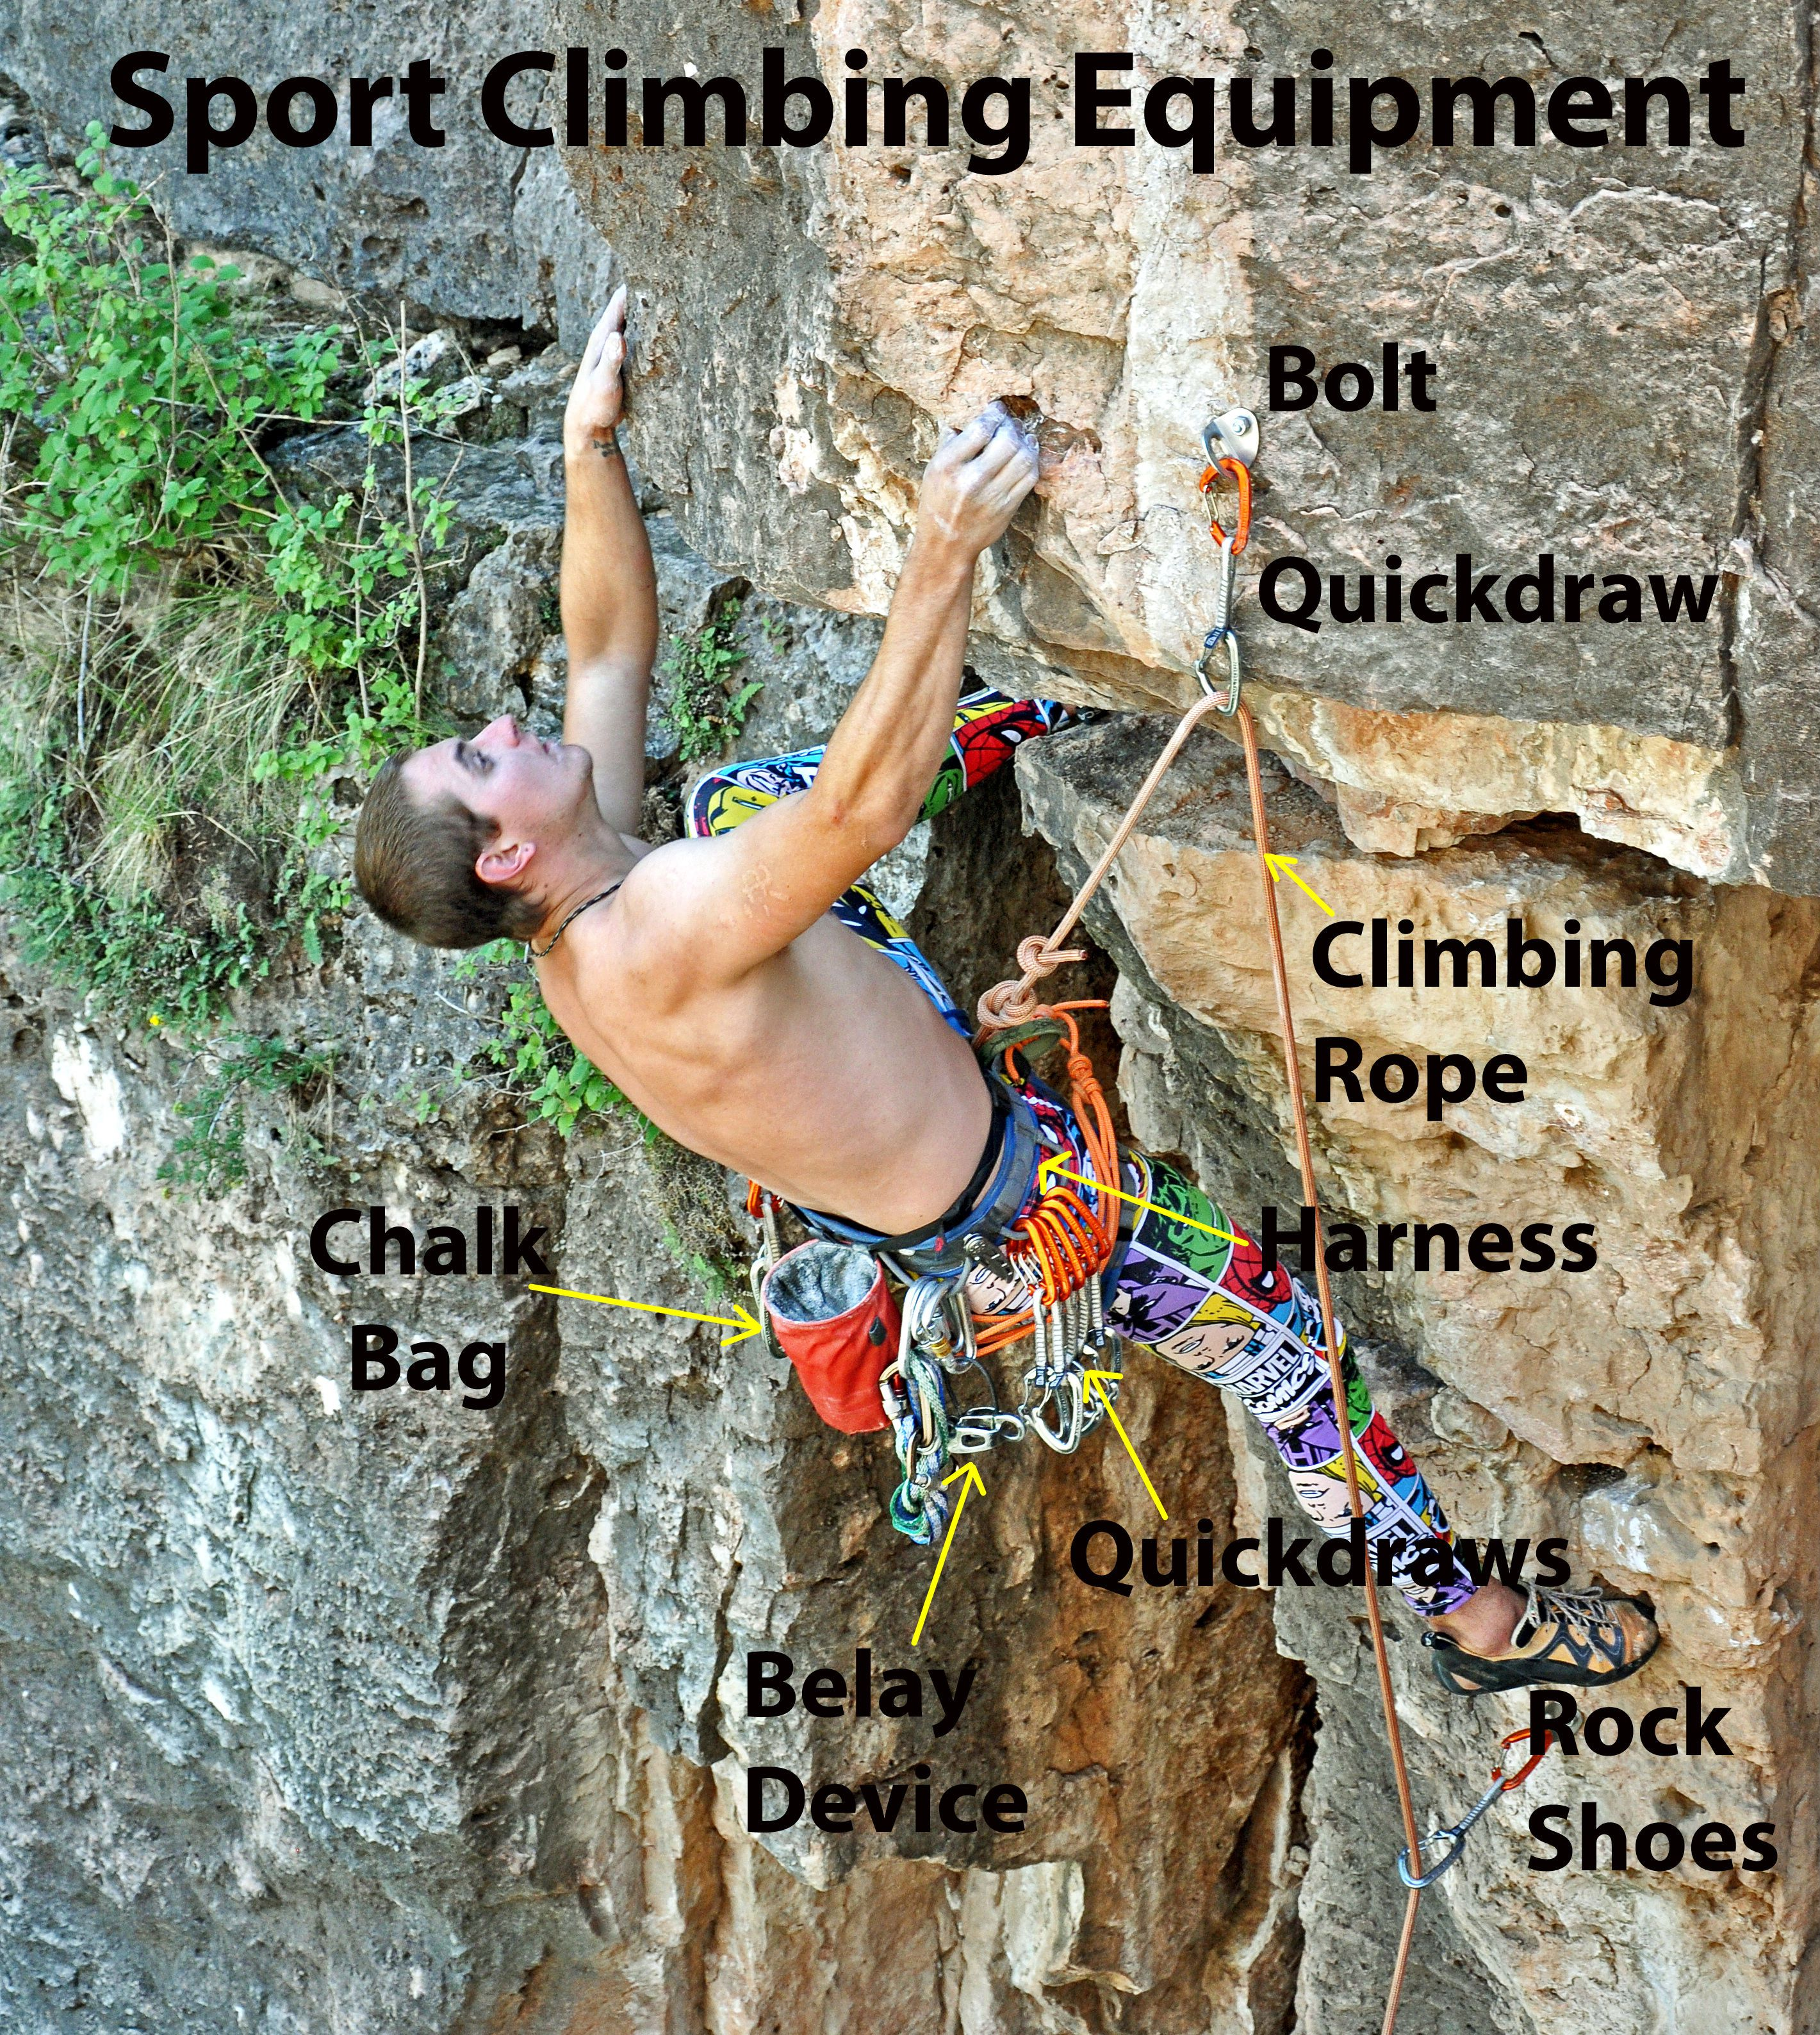 essential sport climbing gear and equipment